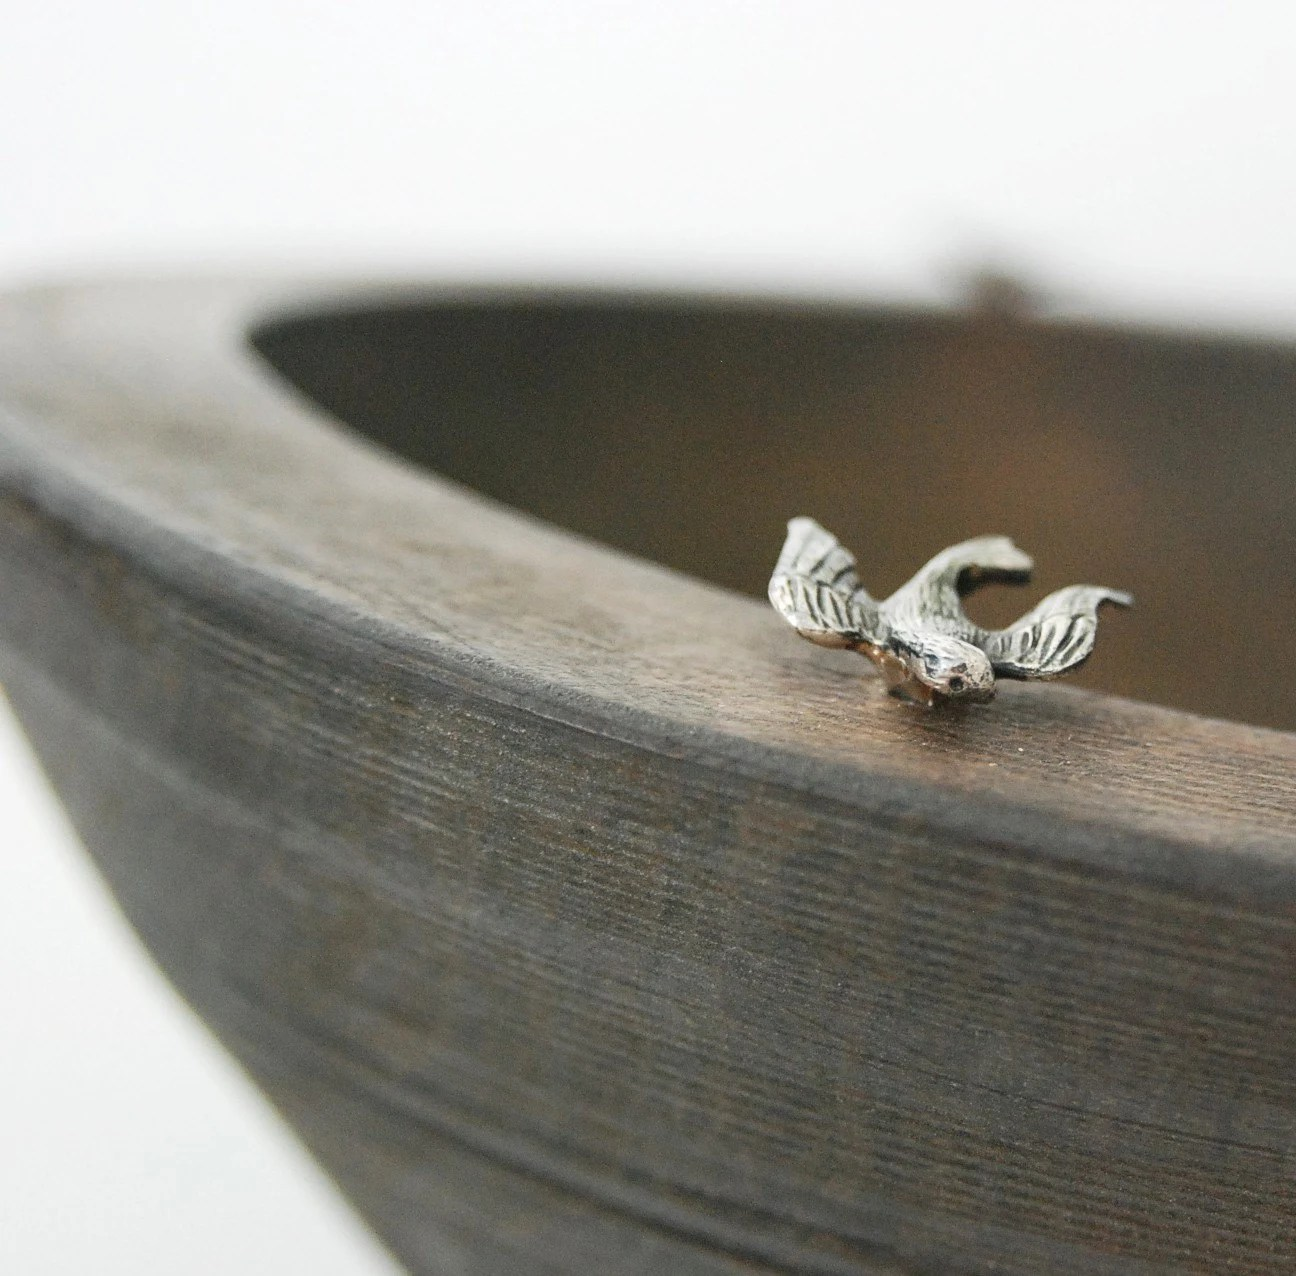 Wooden bowl with three sterling silver birds on top